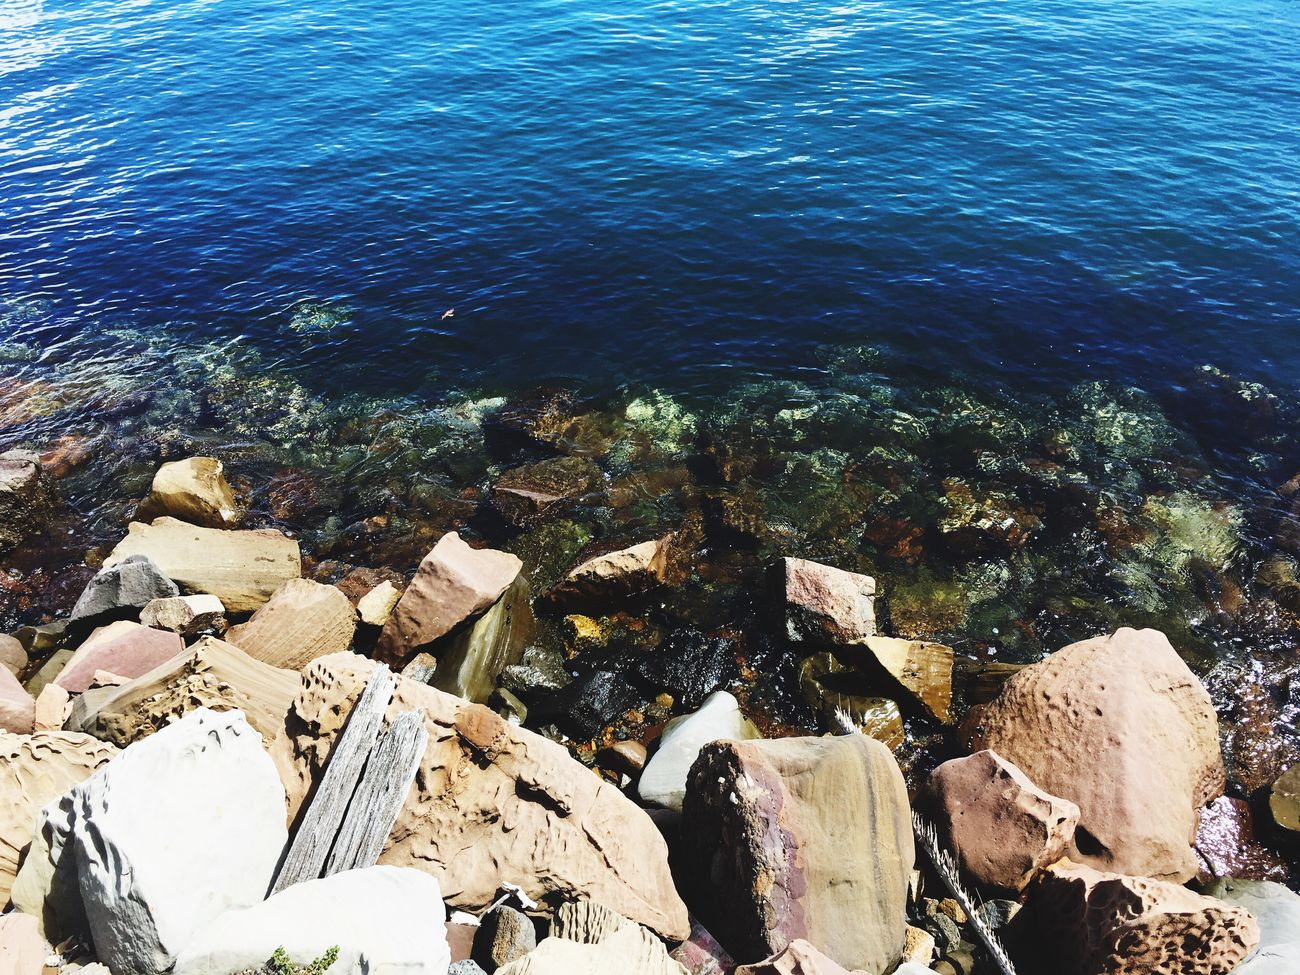 Water Sea High Angle View Nature Beauty In Nature Sunlight Day No People Rock - Object Tranquility Outdoors Tranquil Scene Pebble Beach